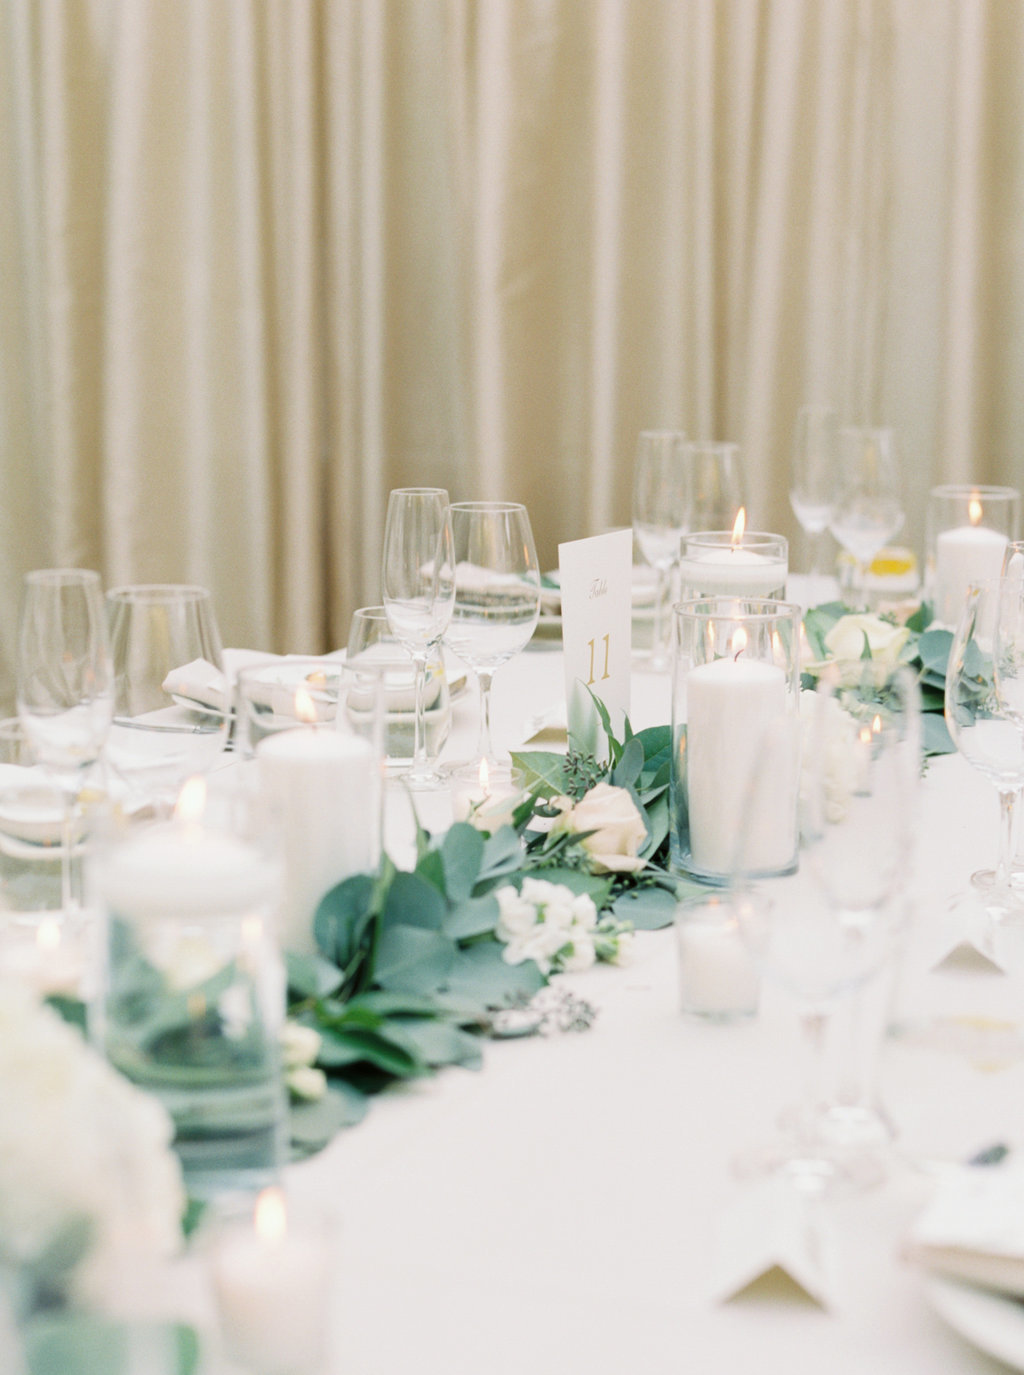 wedding reception table setting with eucalyptus garland and white floral centerpieces at Butterfly Lane Estate